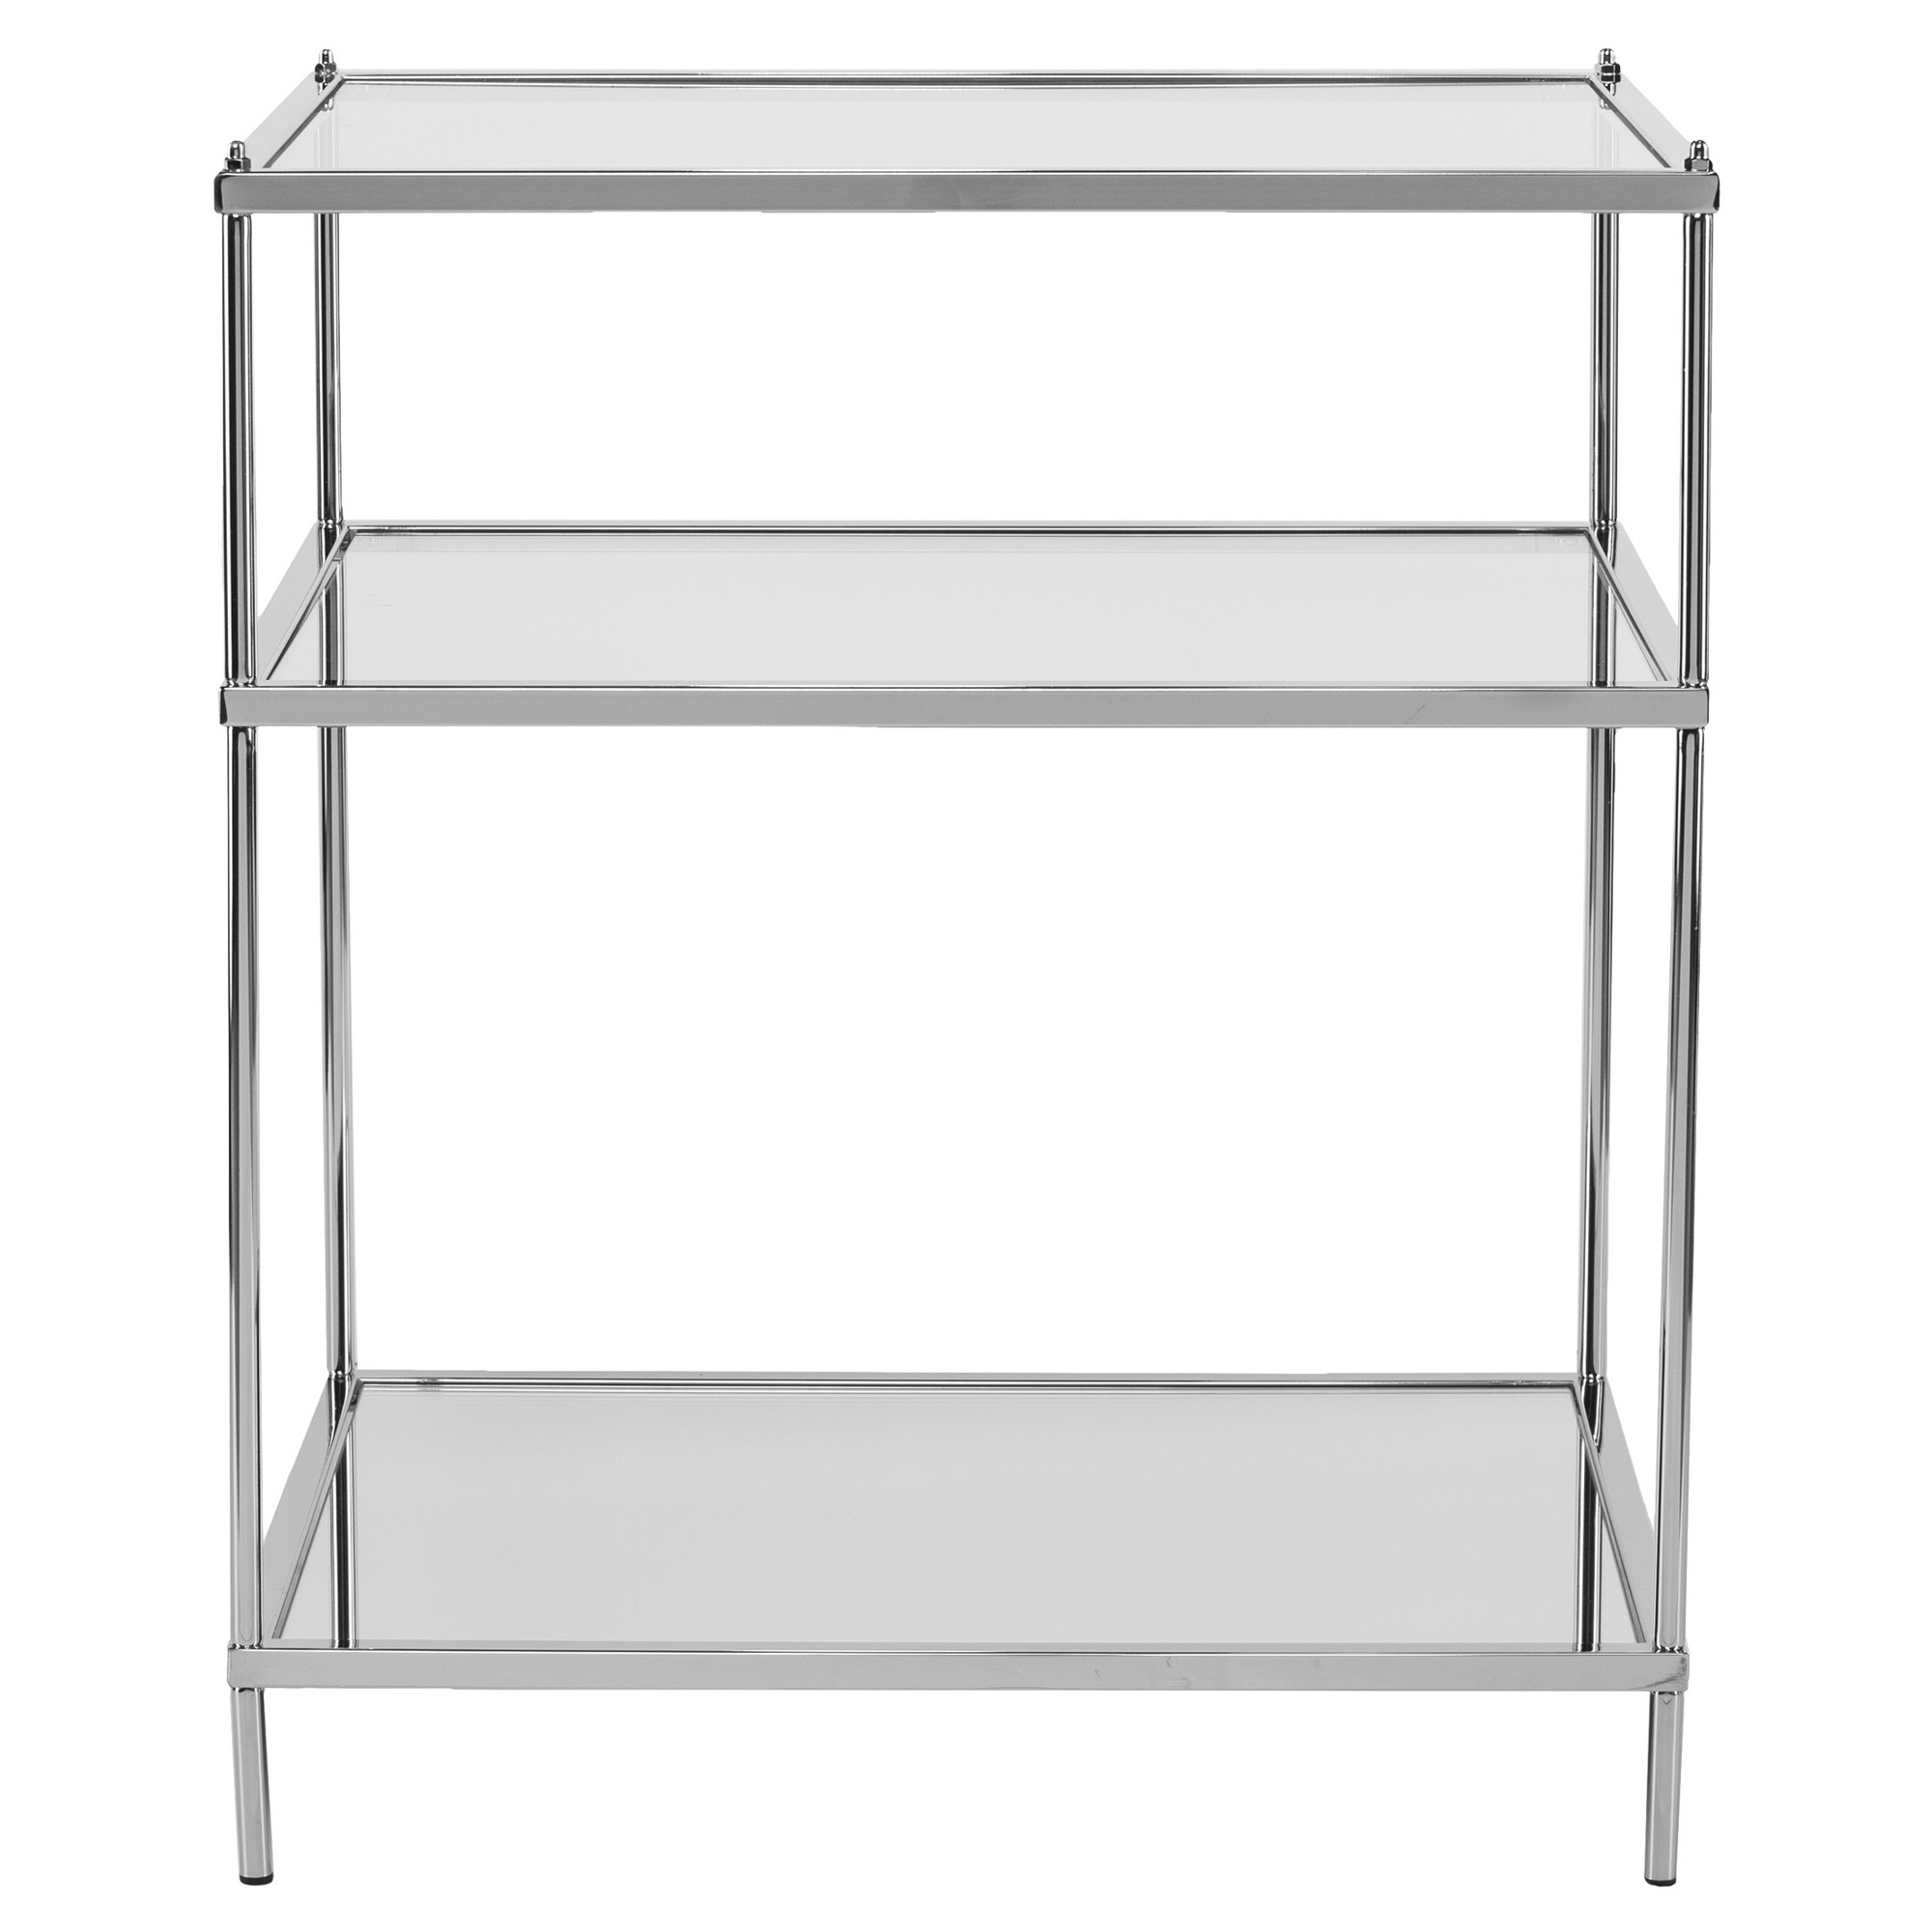 mirrored side table. Benton Glam Mirrored Side Table - Chrome Aiden Lane D